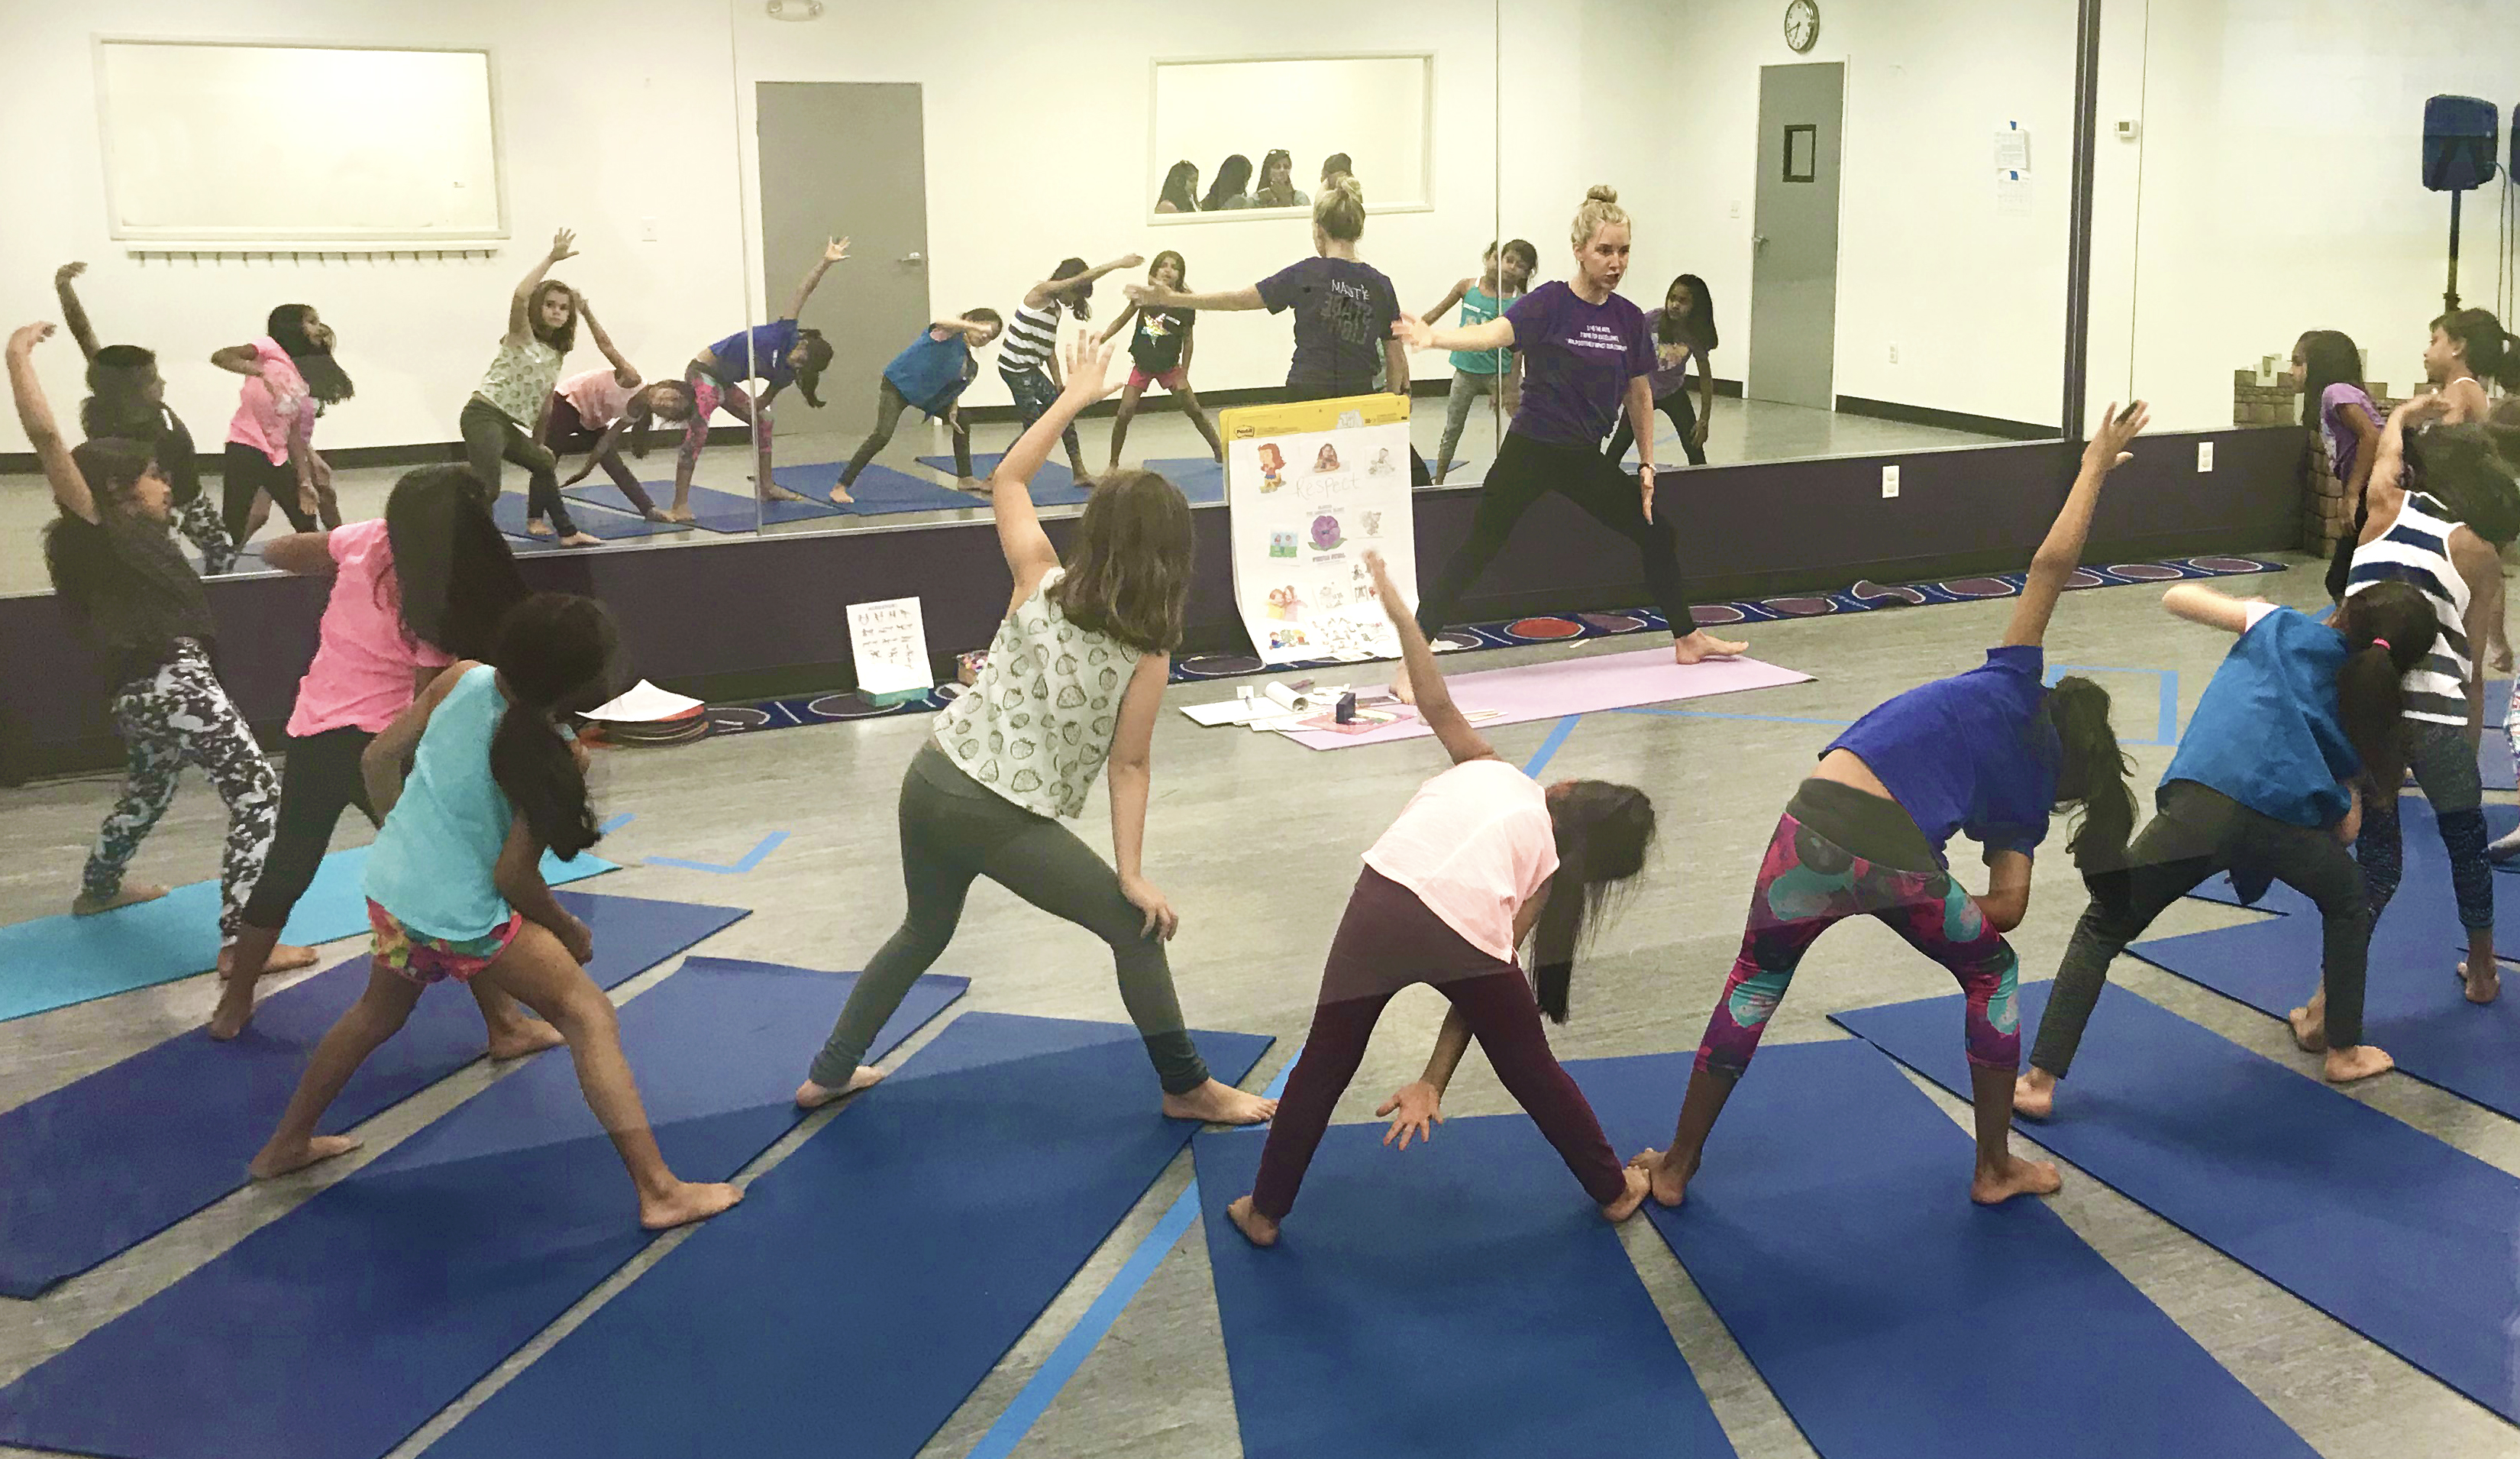 Girl scouts stagelight arts our girl scout badge classes at stagelight performing arts have been developed to meet the requirements of the girl scout council of the united states solutioingenieria Gallery